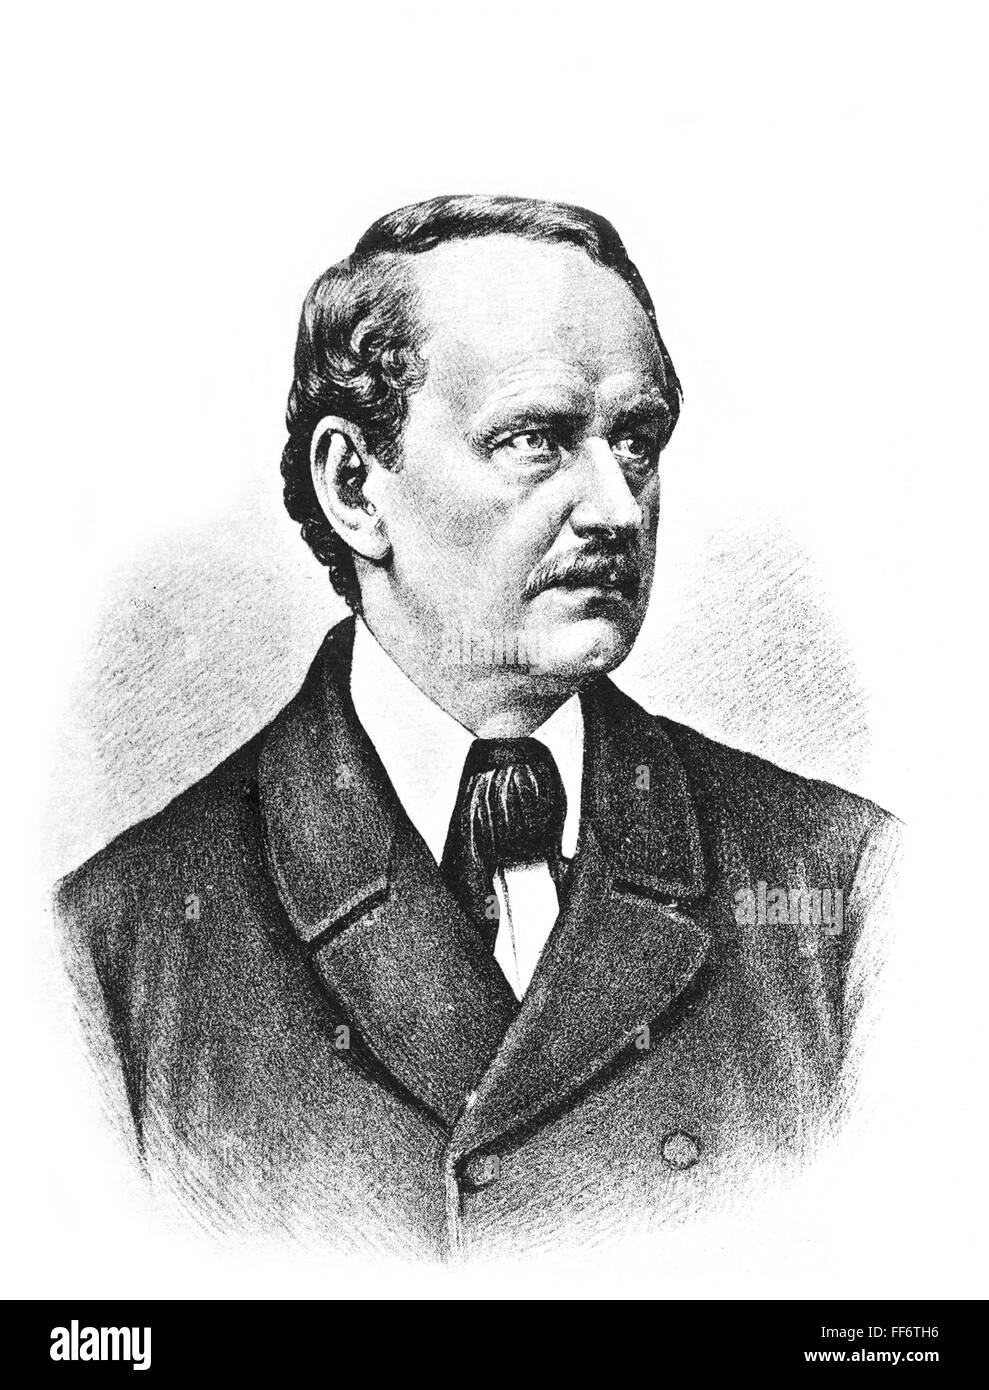 a biography of german biologist matthias schleiden Matthias schleiden was a german botanist and co-founder of the cell theory matthias schleiden: biography and highlights schleiden became the first to formulate as a principle of biology what was until then an informal belief.